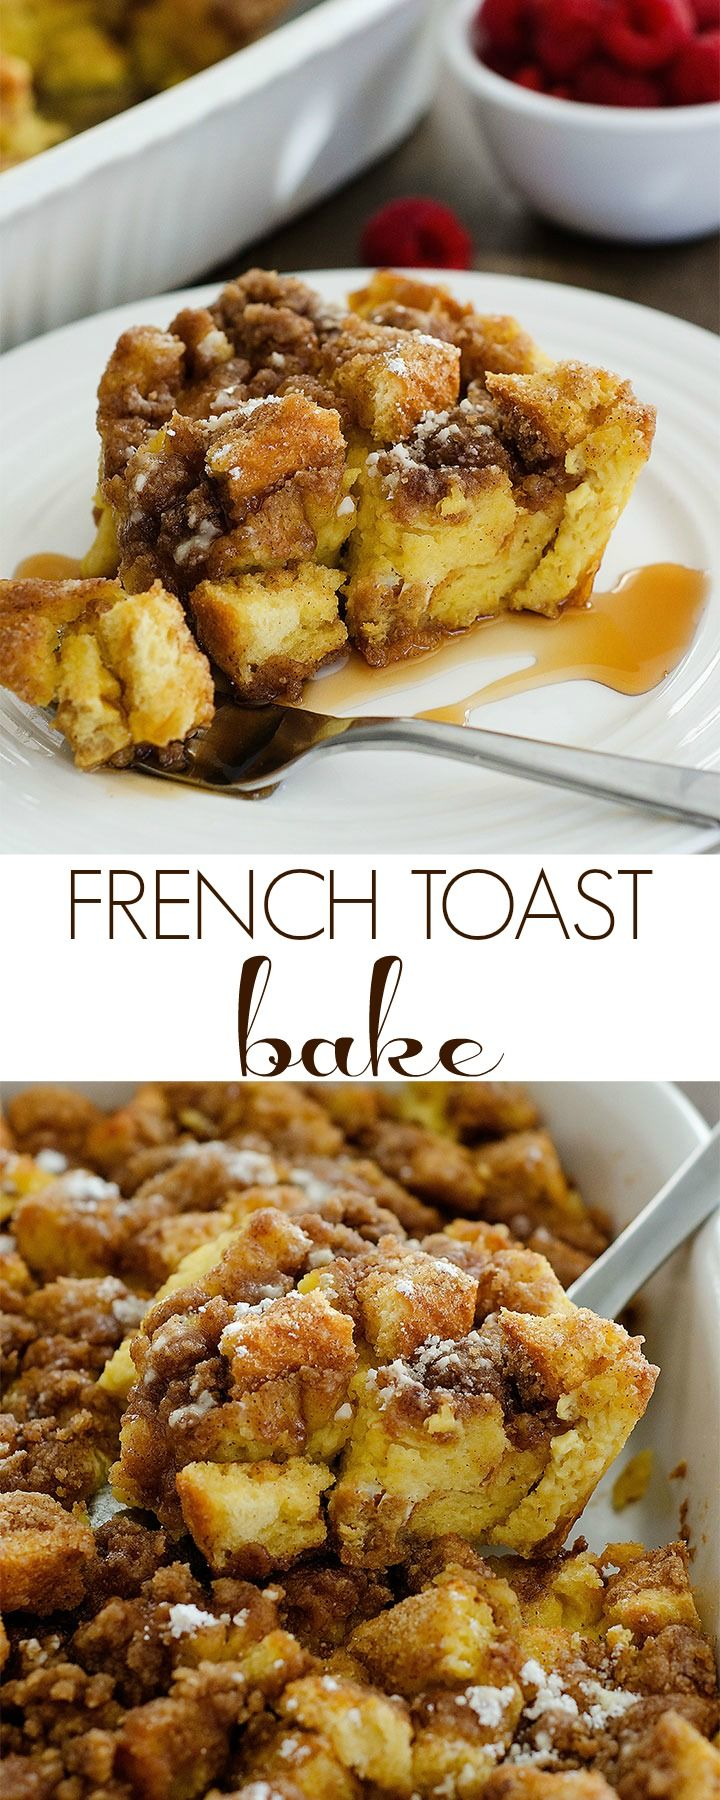 I've made the same Christmas morning breakfast for the past 10 years. Mom's Breakfast Bake and our favorite Cinnamon Rolls. My family loves it and I do too, but I thought it was time to change things up this year!  That being said, let me introduce to you FRENCH TOAST BAKE aka. the most wonderful... Read More »